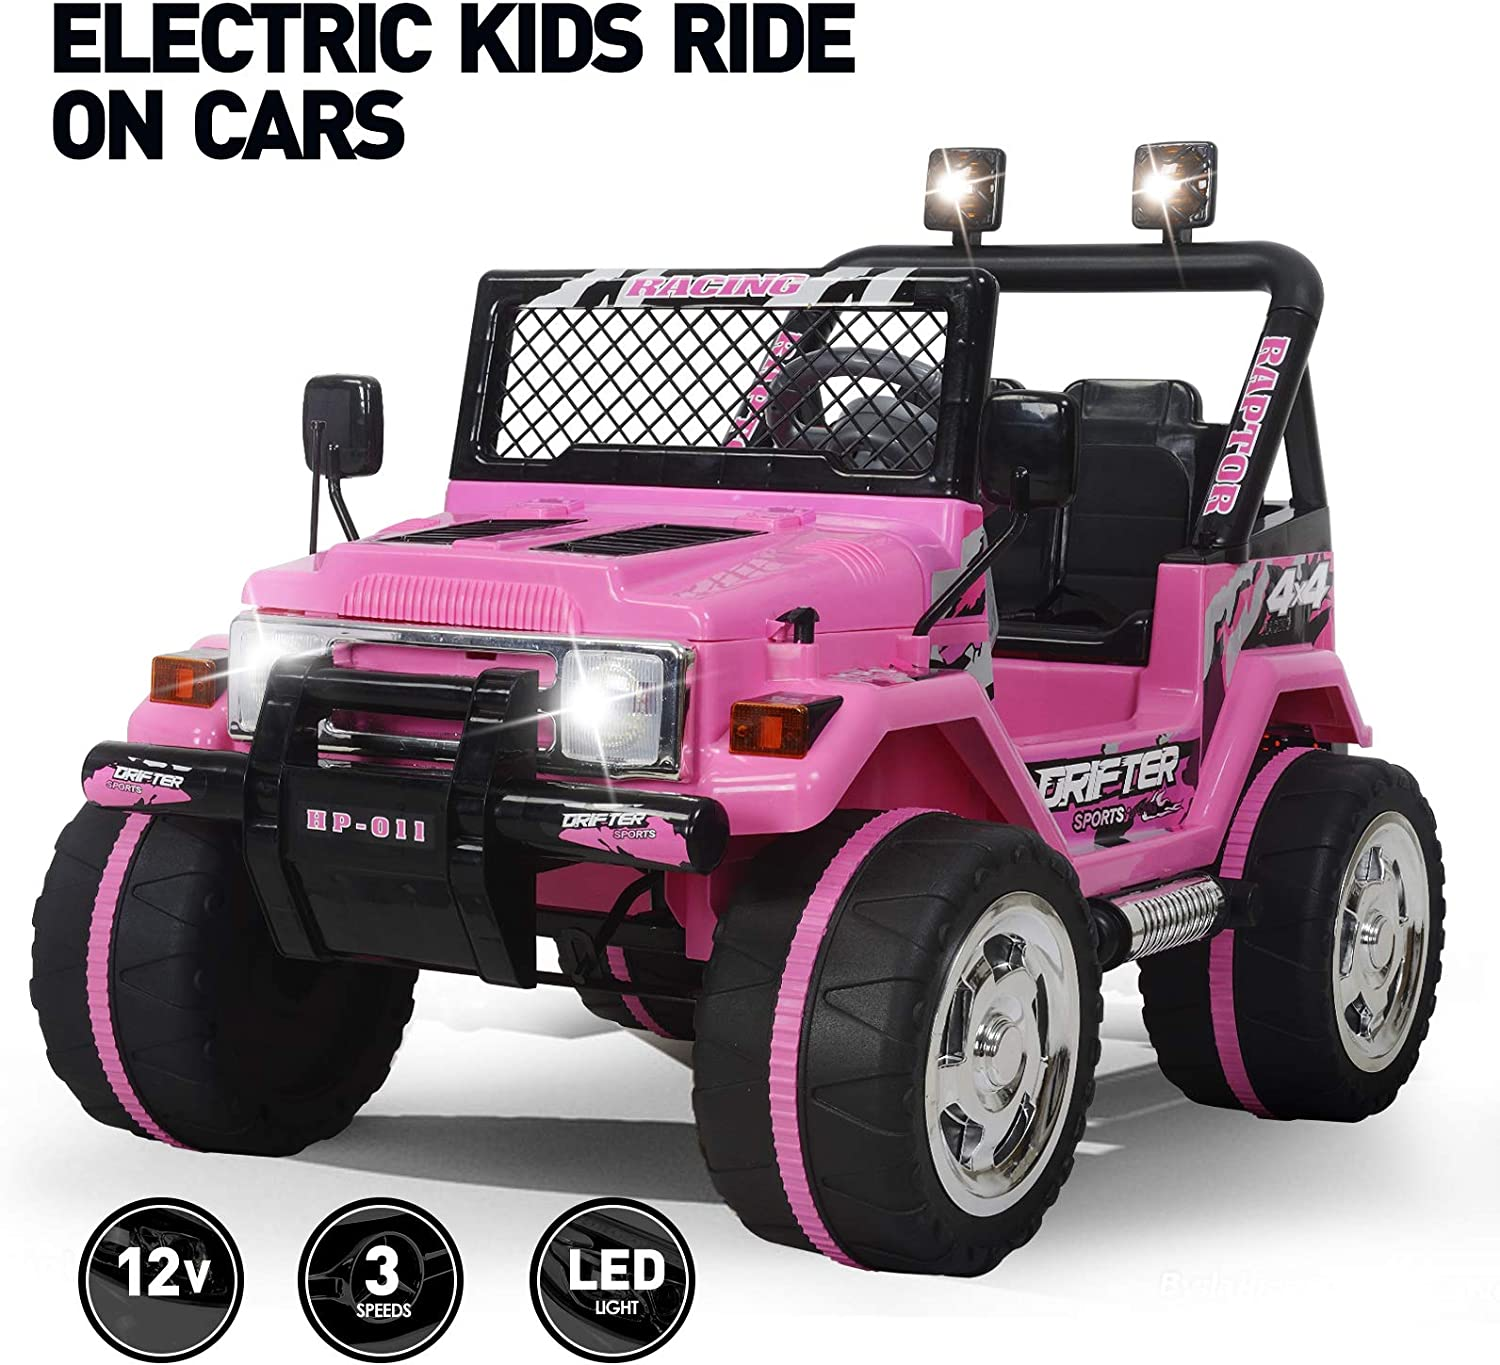 Kids Power Wheels Motorized Best Electric Ride On Car Toy Battery Powered 6V